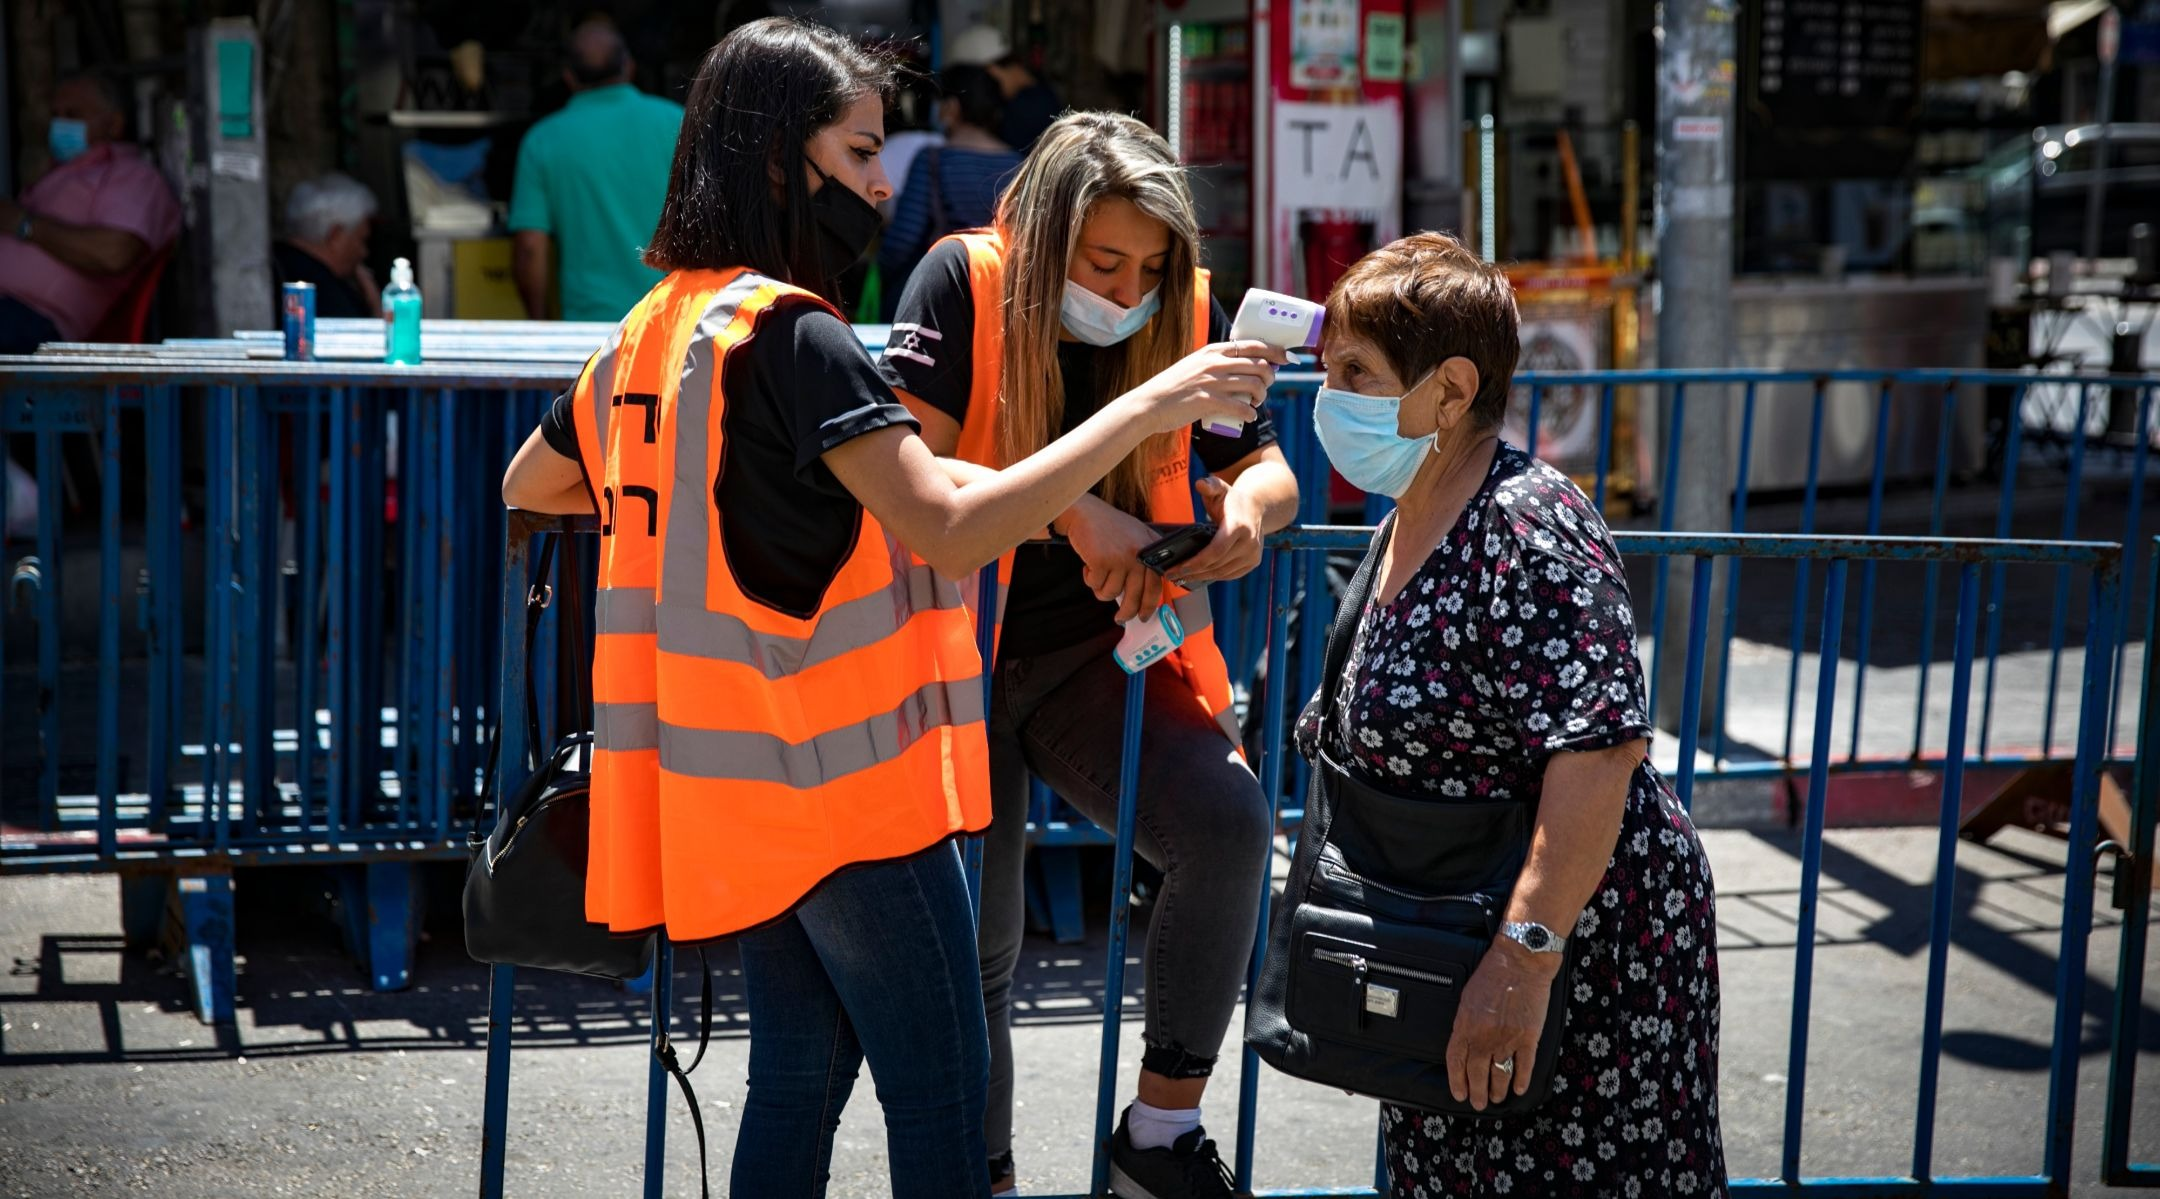 Starting Sunday, Israelis won't be required to wear masks outdoors